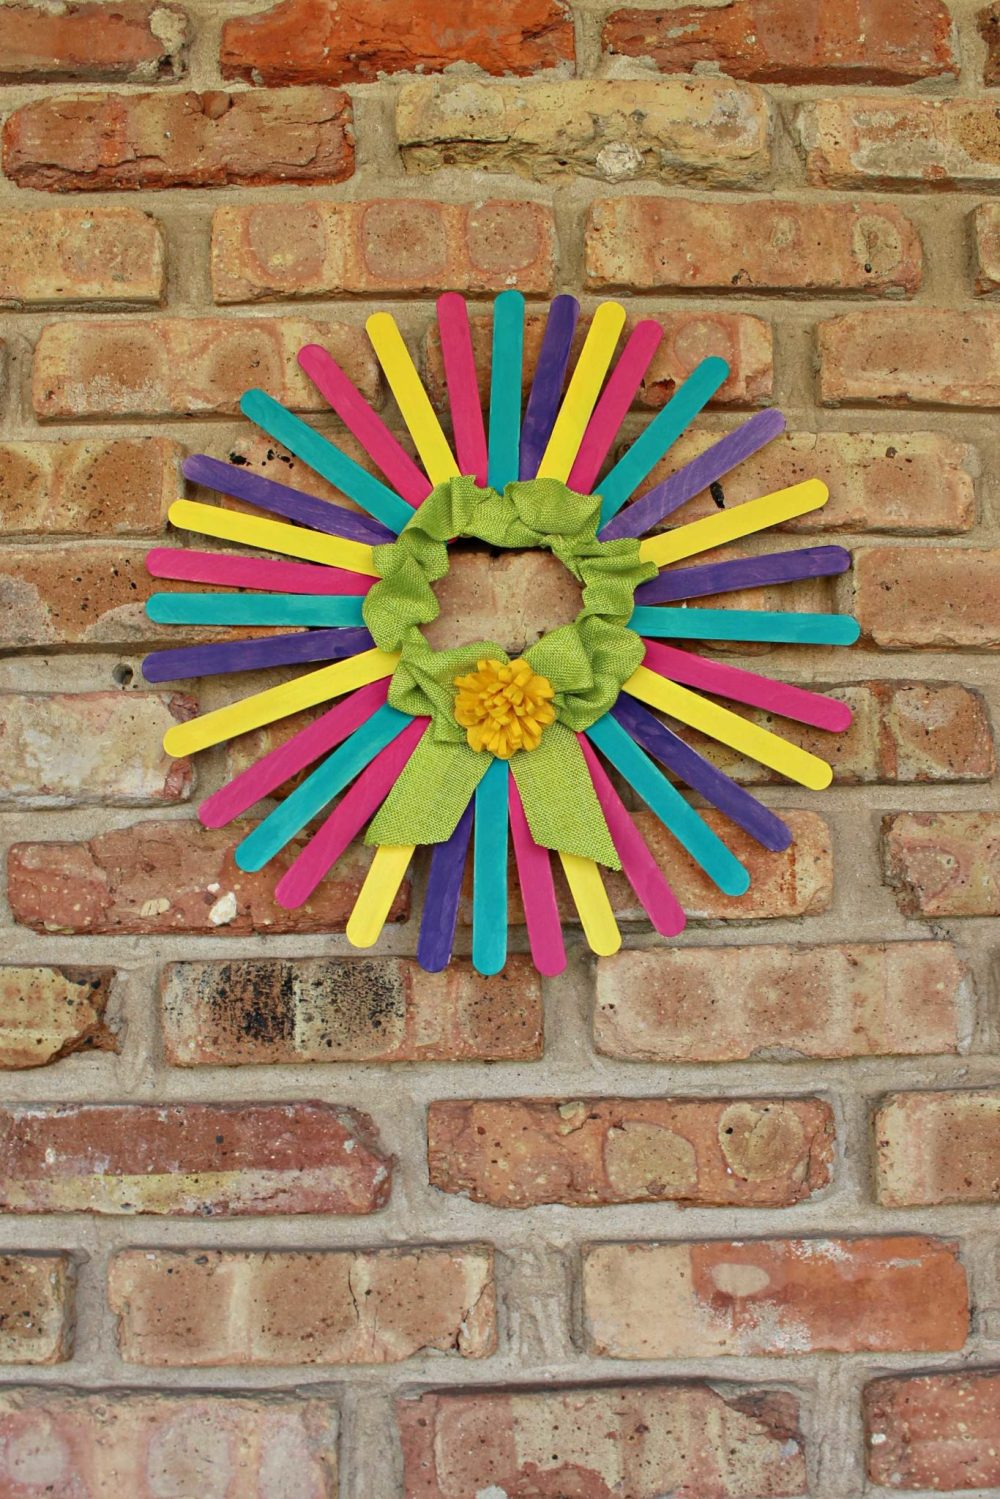 DIY Spring Wreath For Front Door made with painted craft sticks